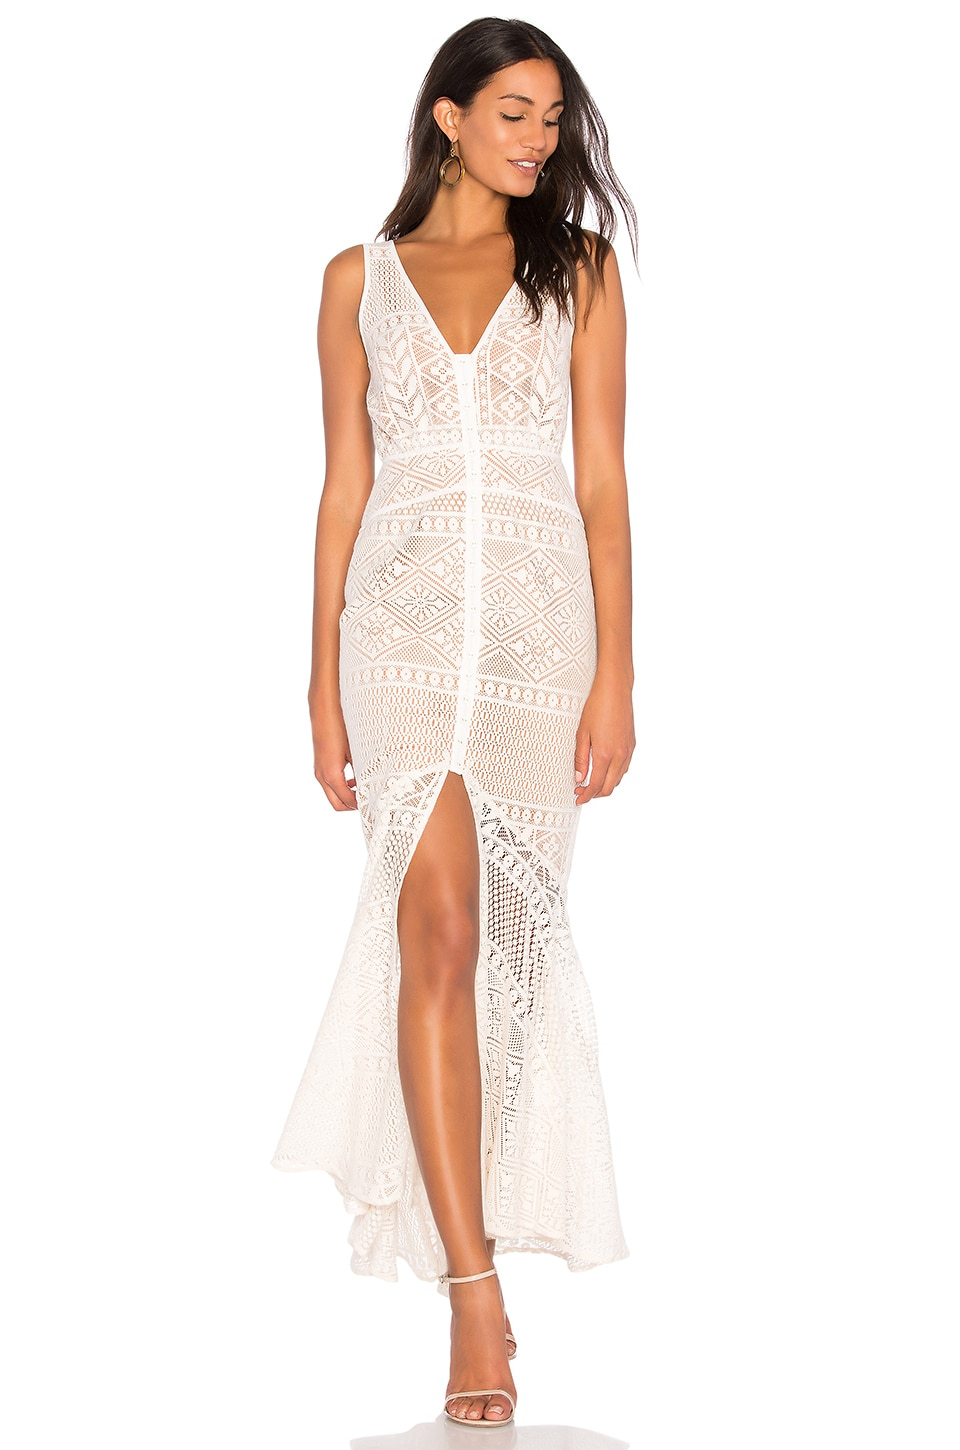 We Are Kindred Darling Dahlia Maxi Dress in Ivory